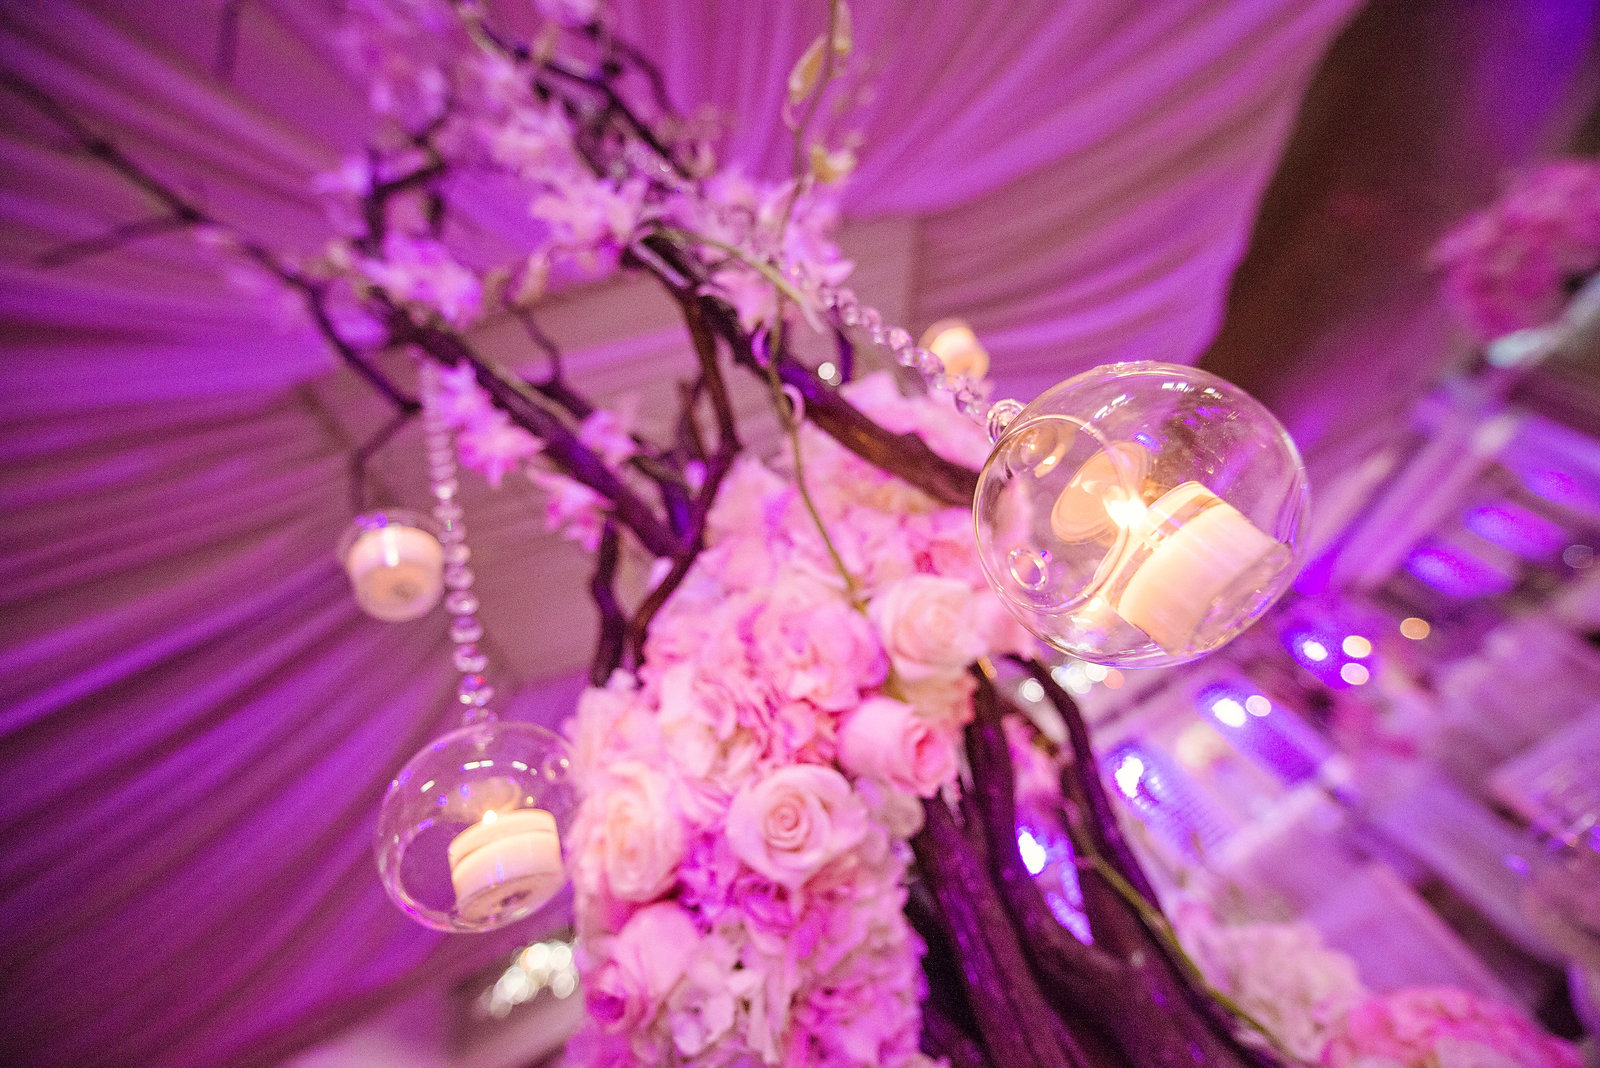 Luxurious wedding decor from Chateau Briand